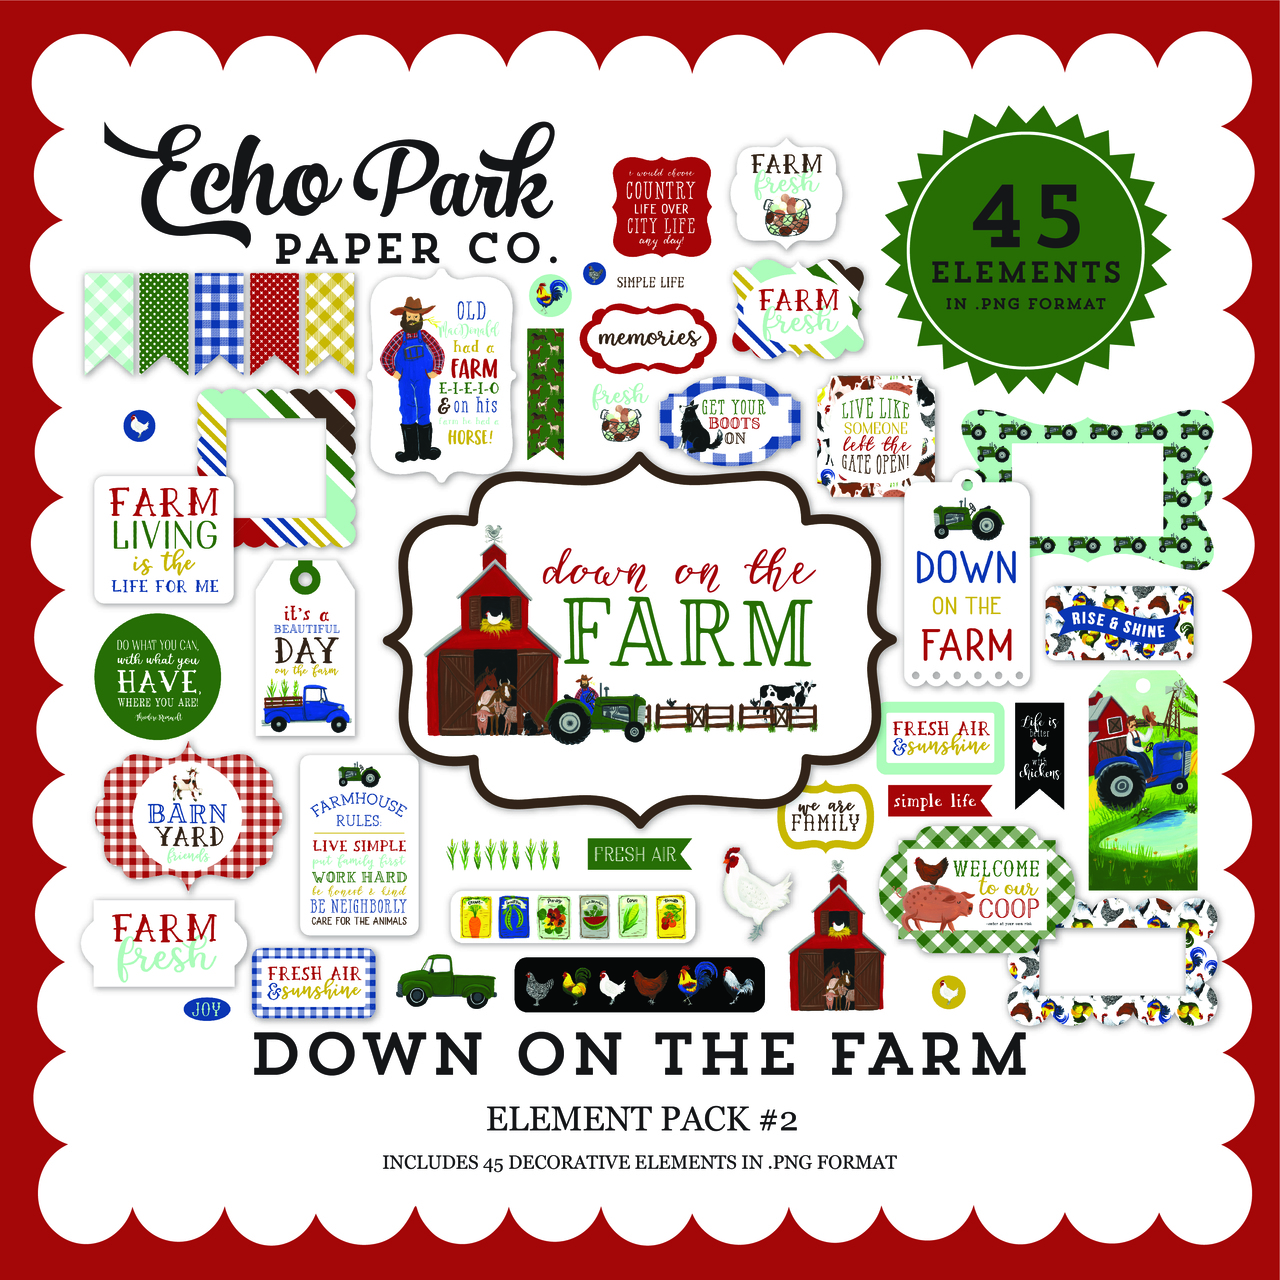 Down on the Farm Element Pack #2